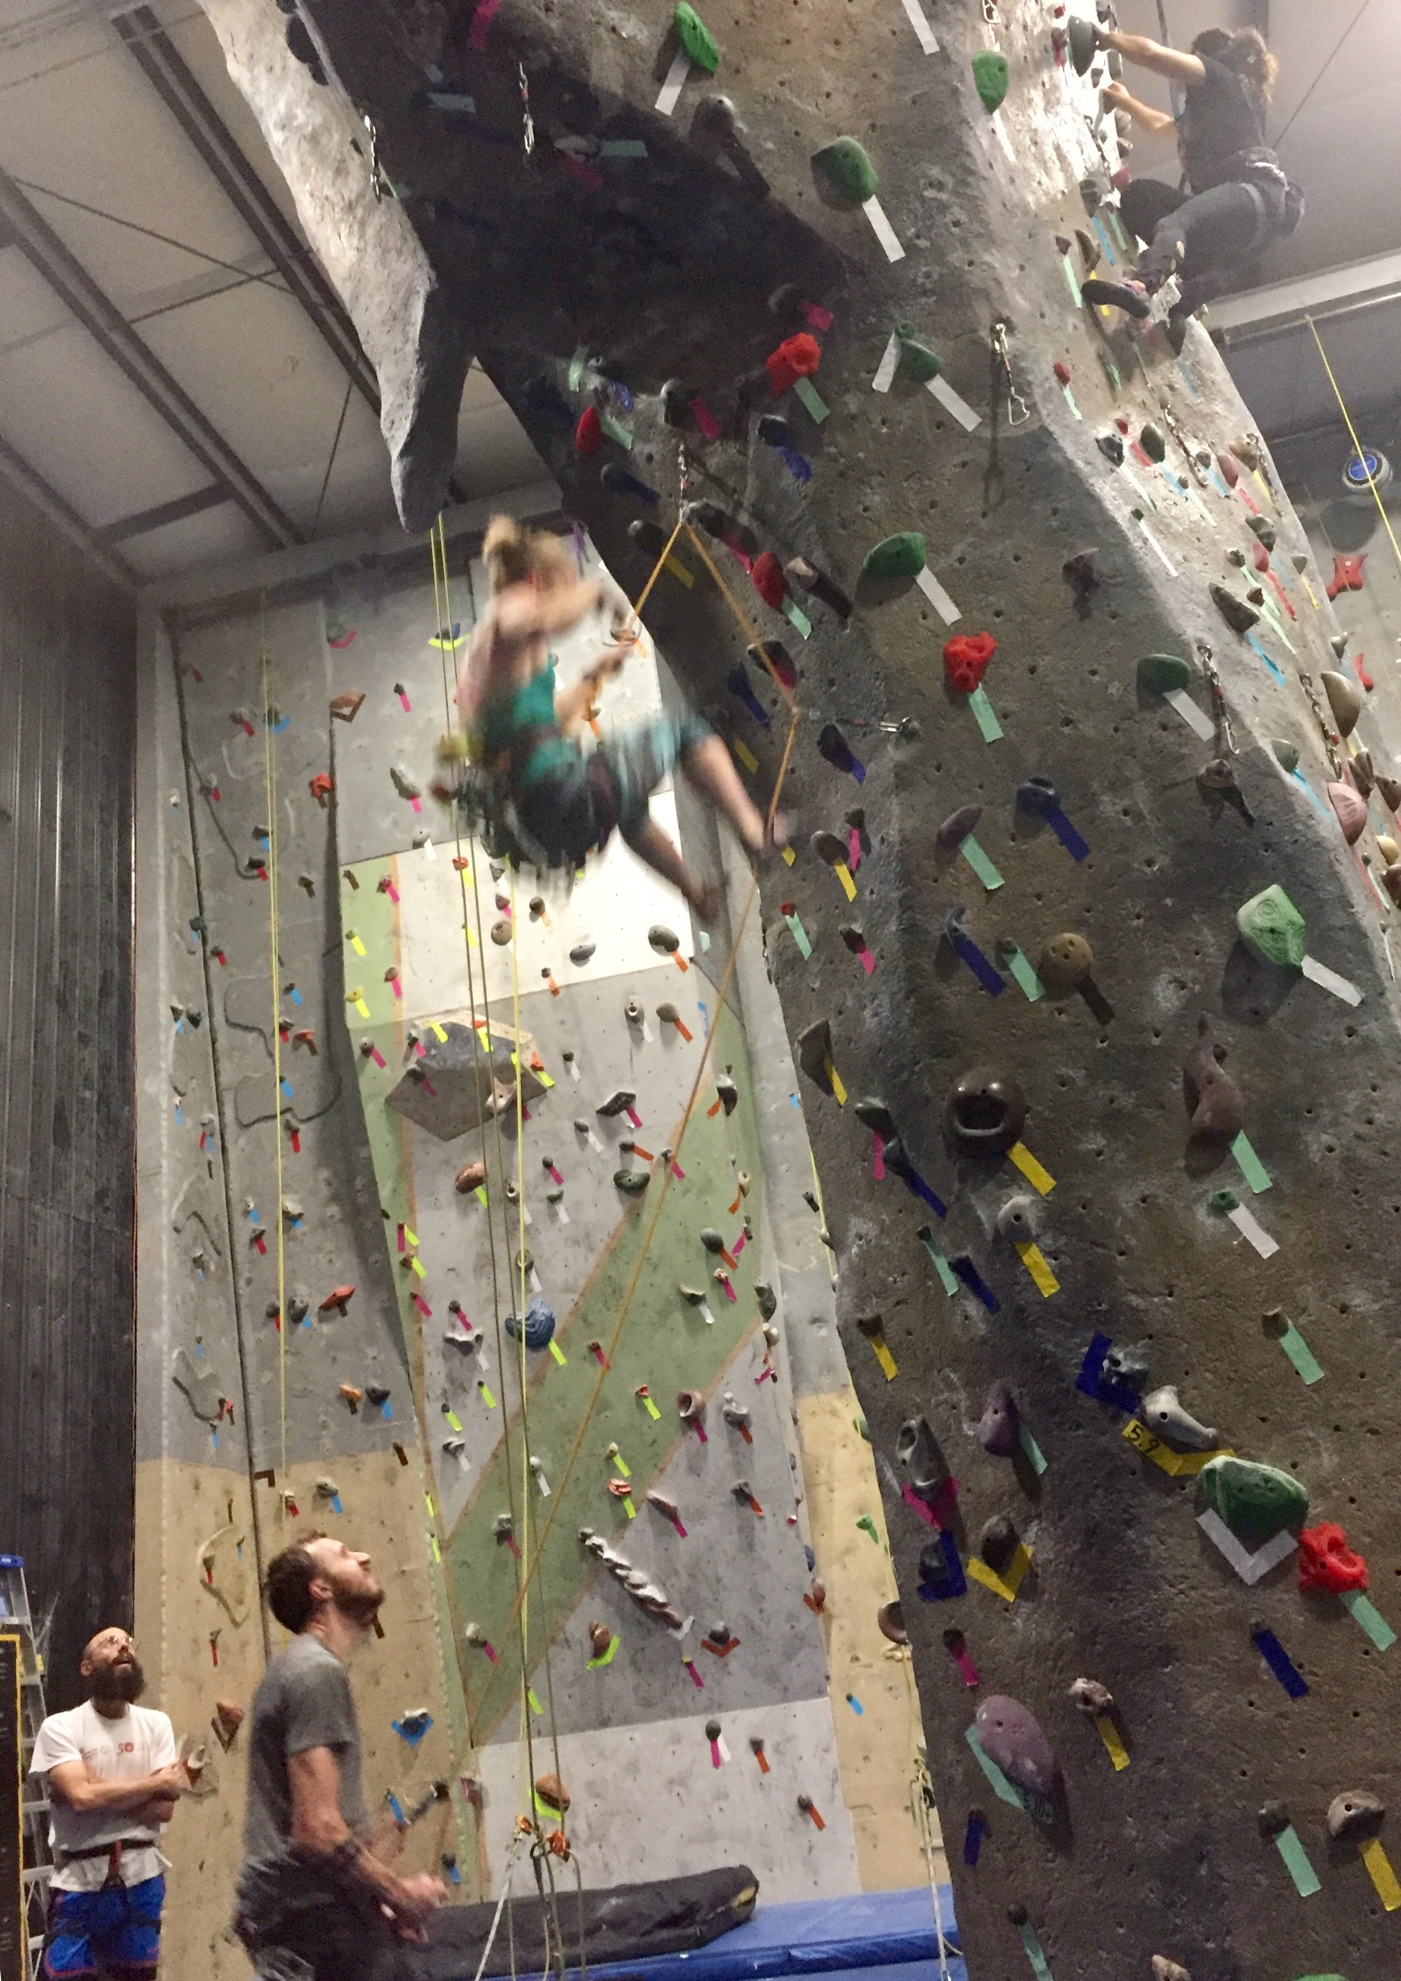 Female Climber Falling After Forced Fall